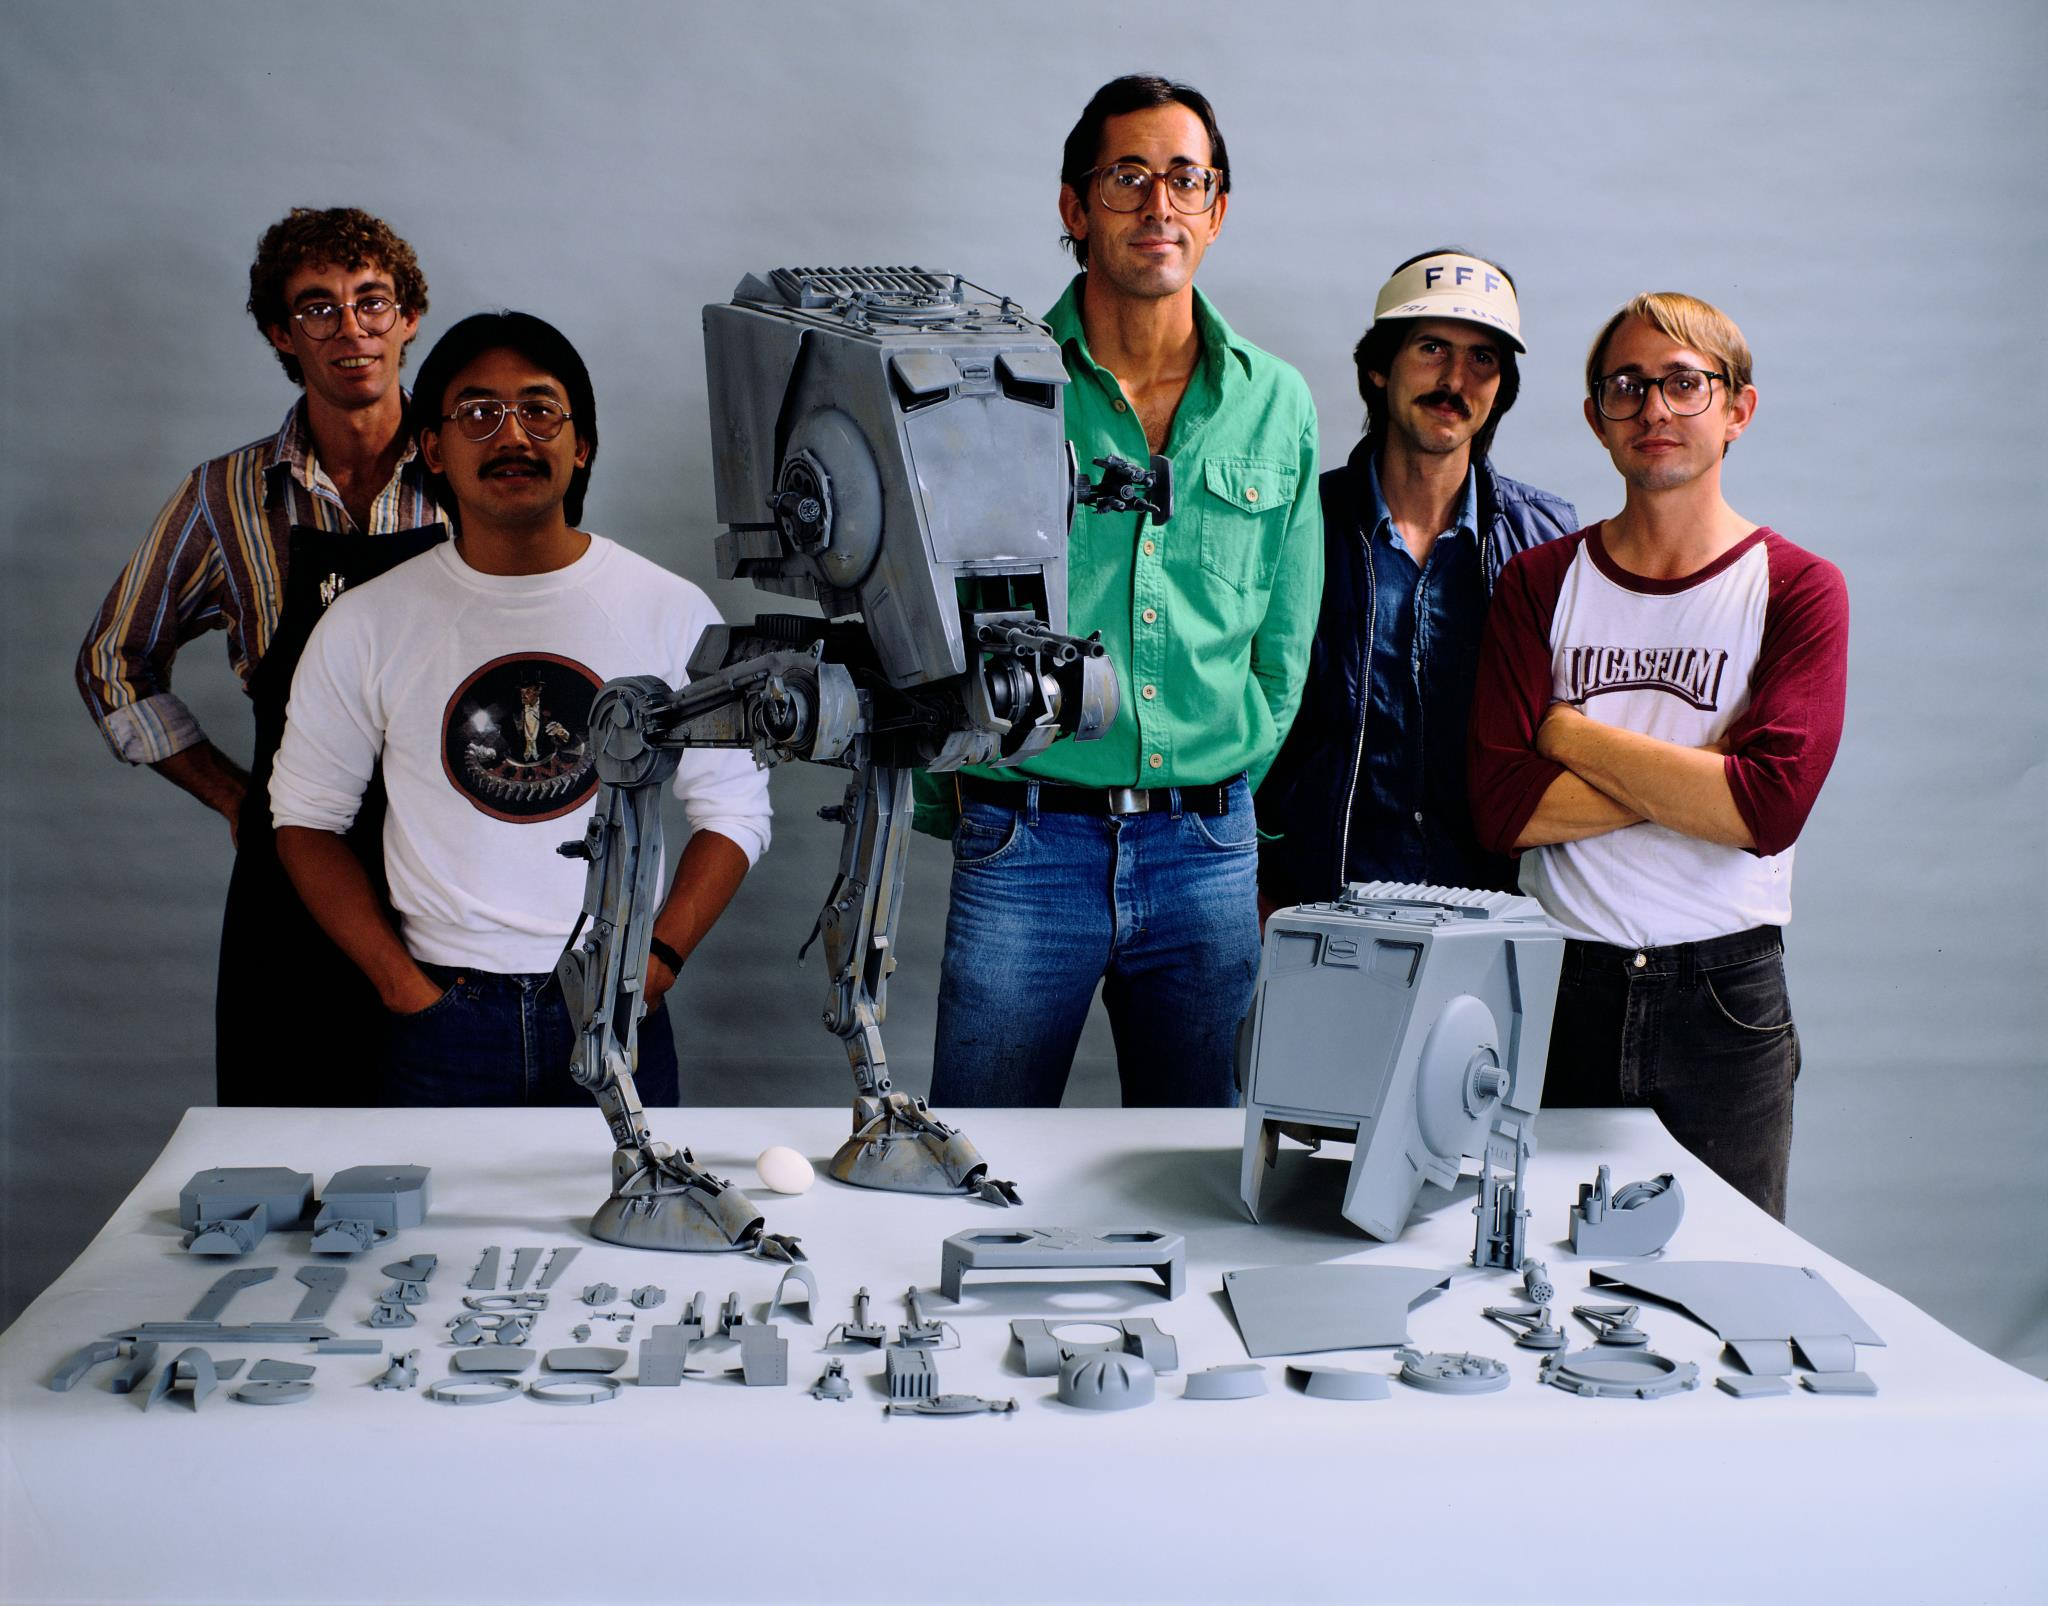 Pictured here, original ILM crew with finished AT-ST model for Star Wars: Return of the Jedi.